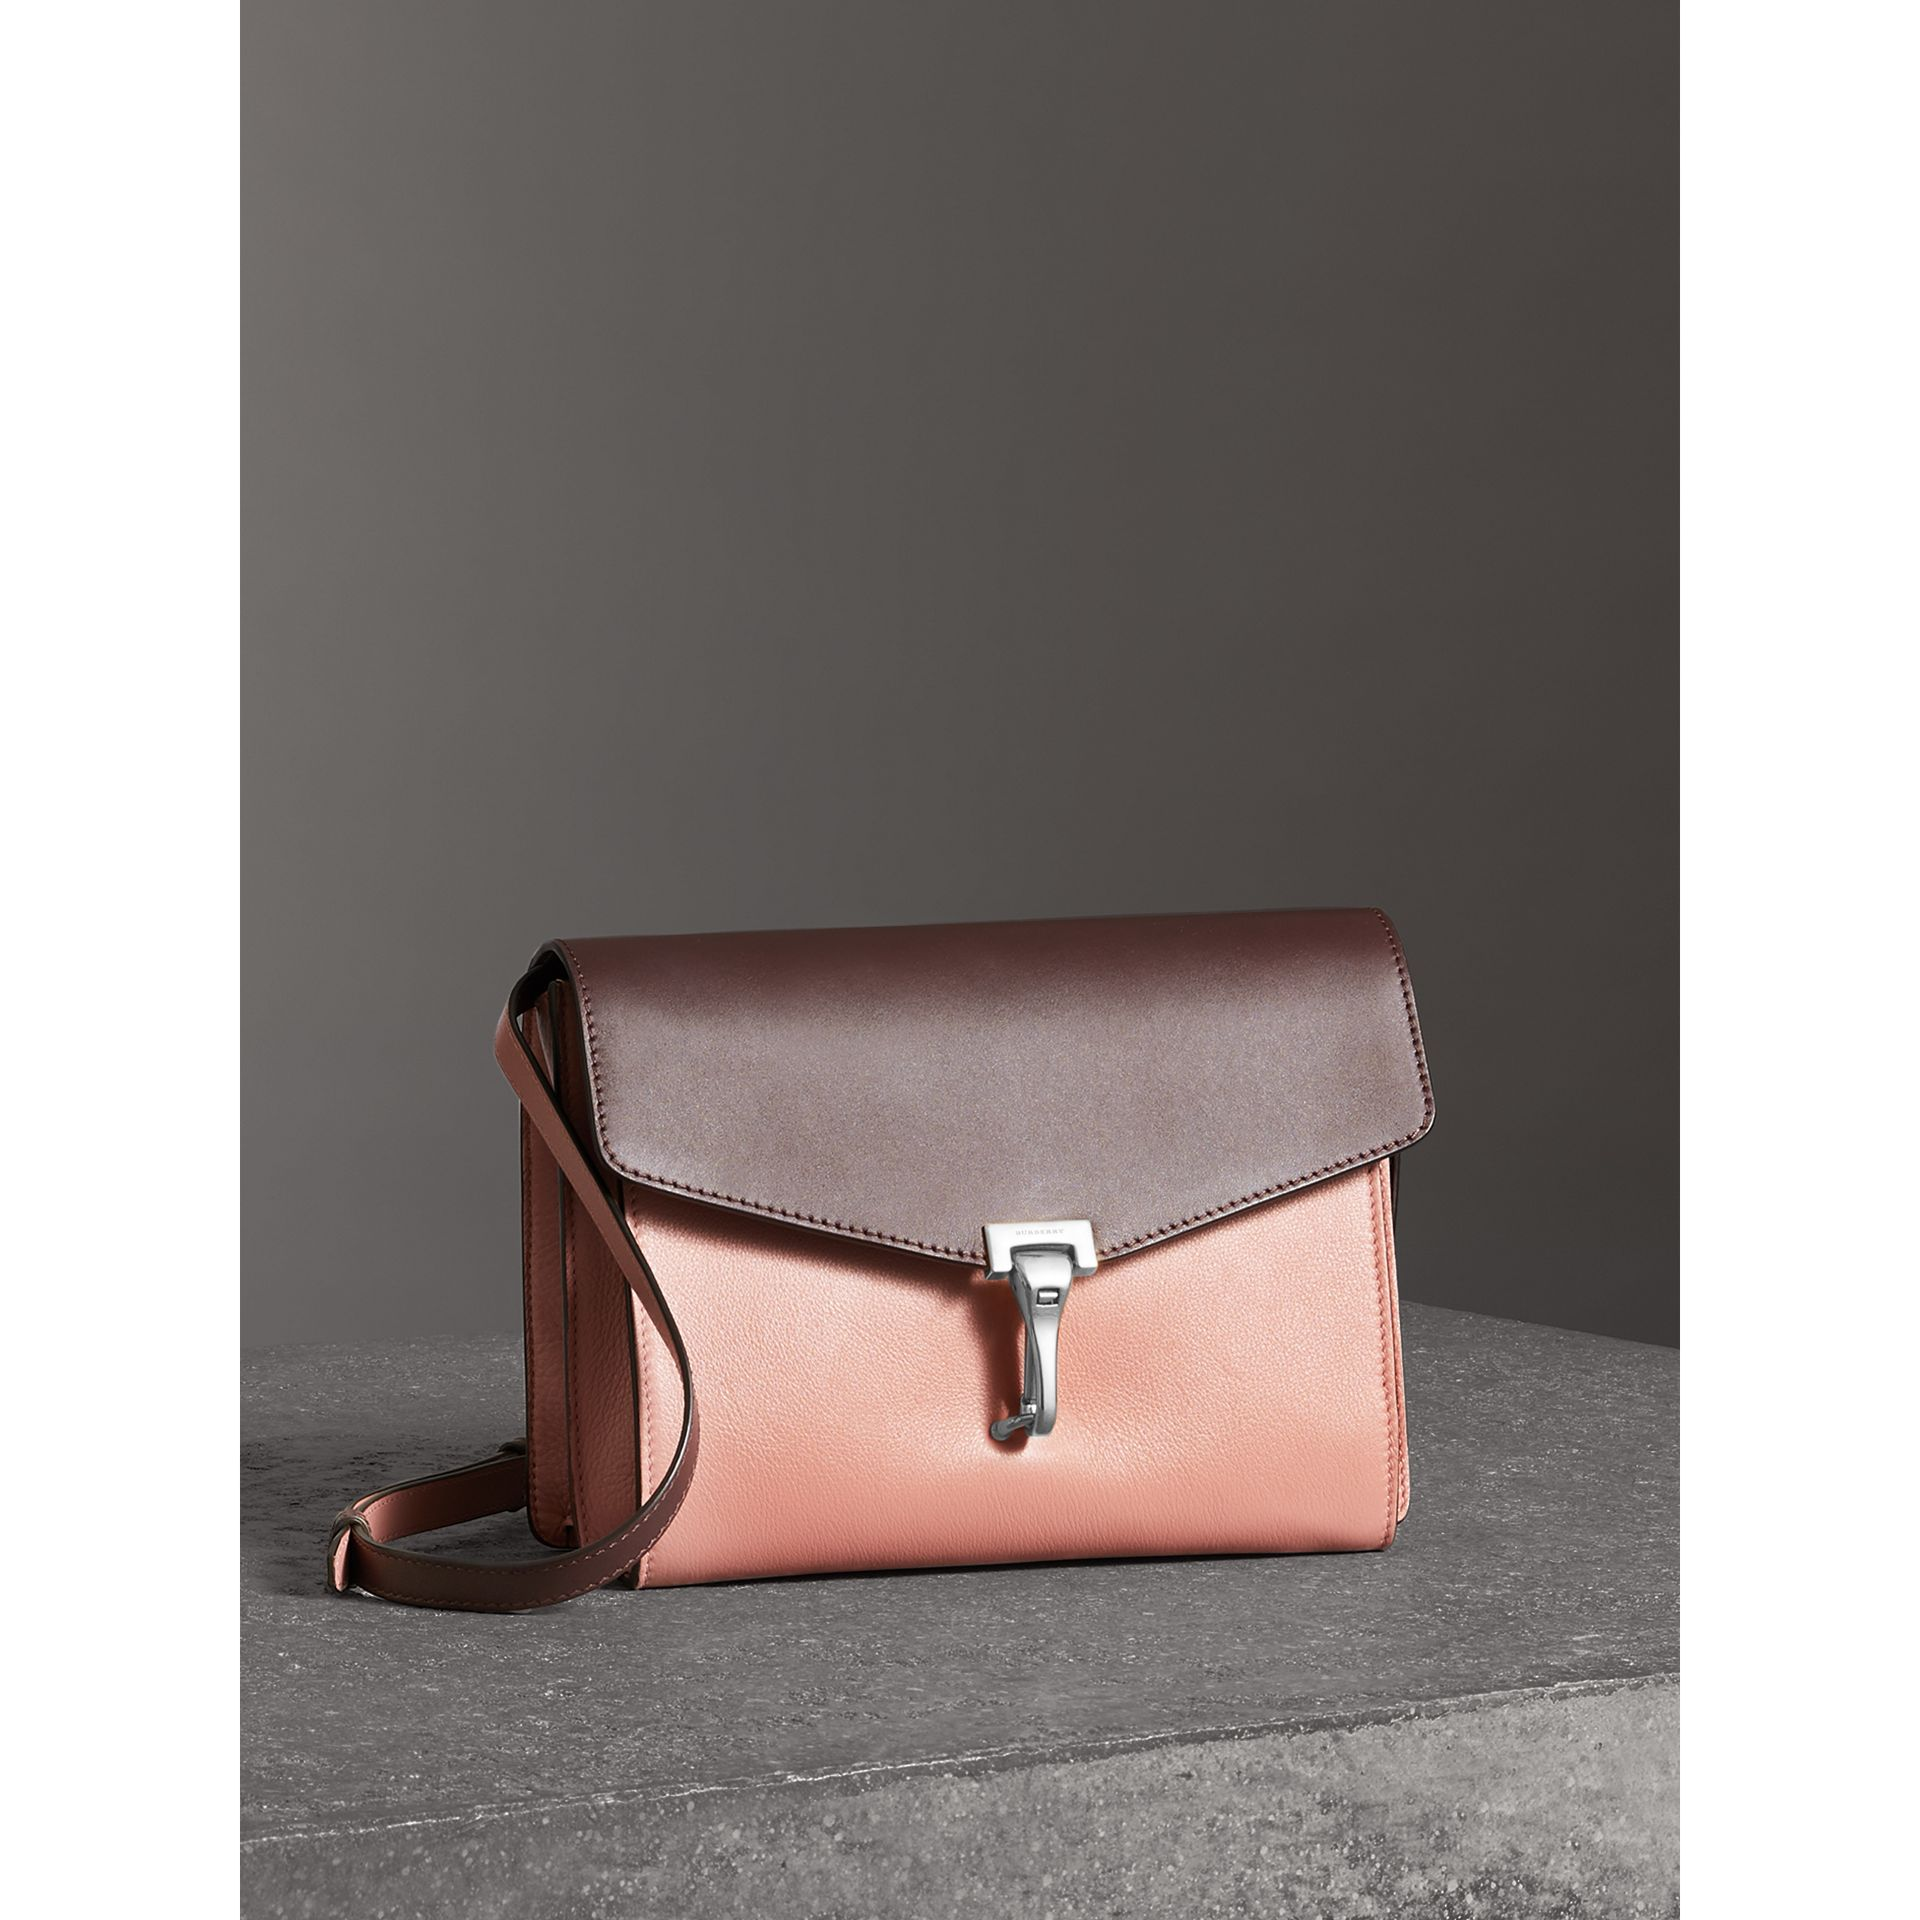 Two-tone Leather Crossbody Bag in Dusty Rose/deep Claret - Women | Burberry United Kingdom - gallery image 6